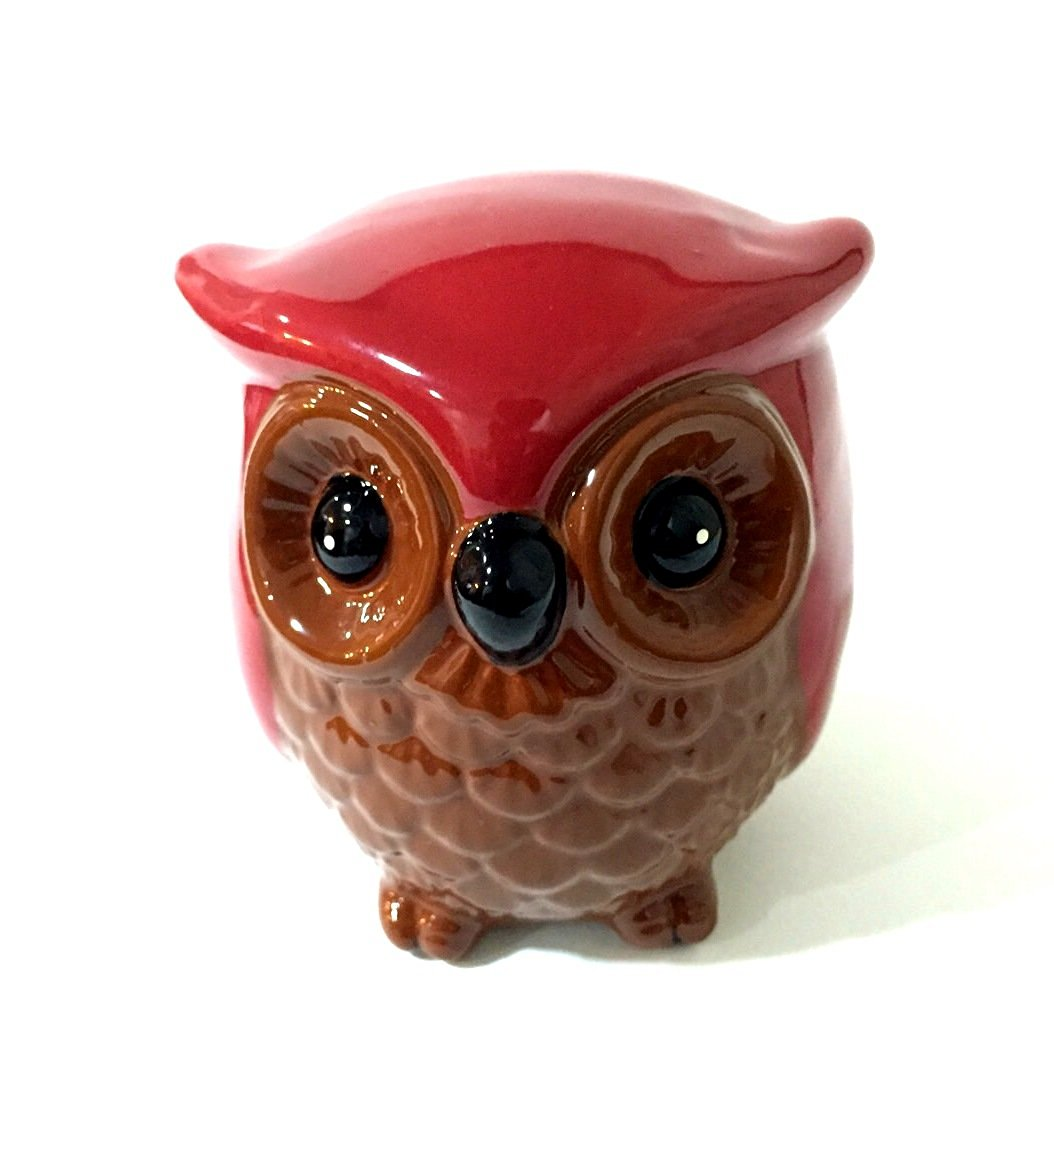 Ceramic Owl Coin Bank Money Bank Aprox. size 3 x 3 x 3.5 inches